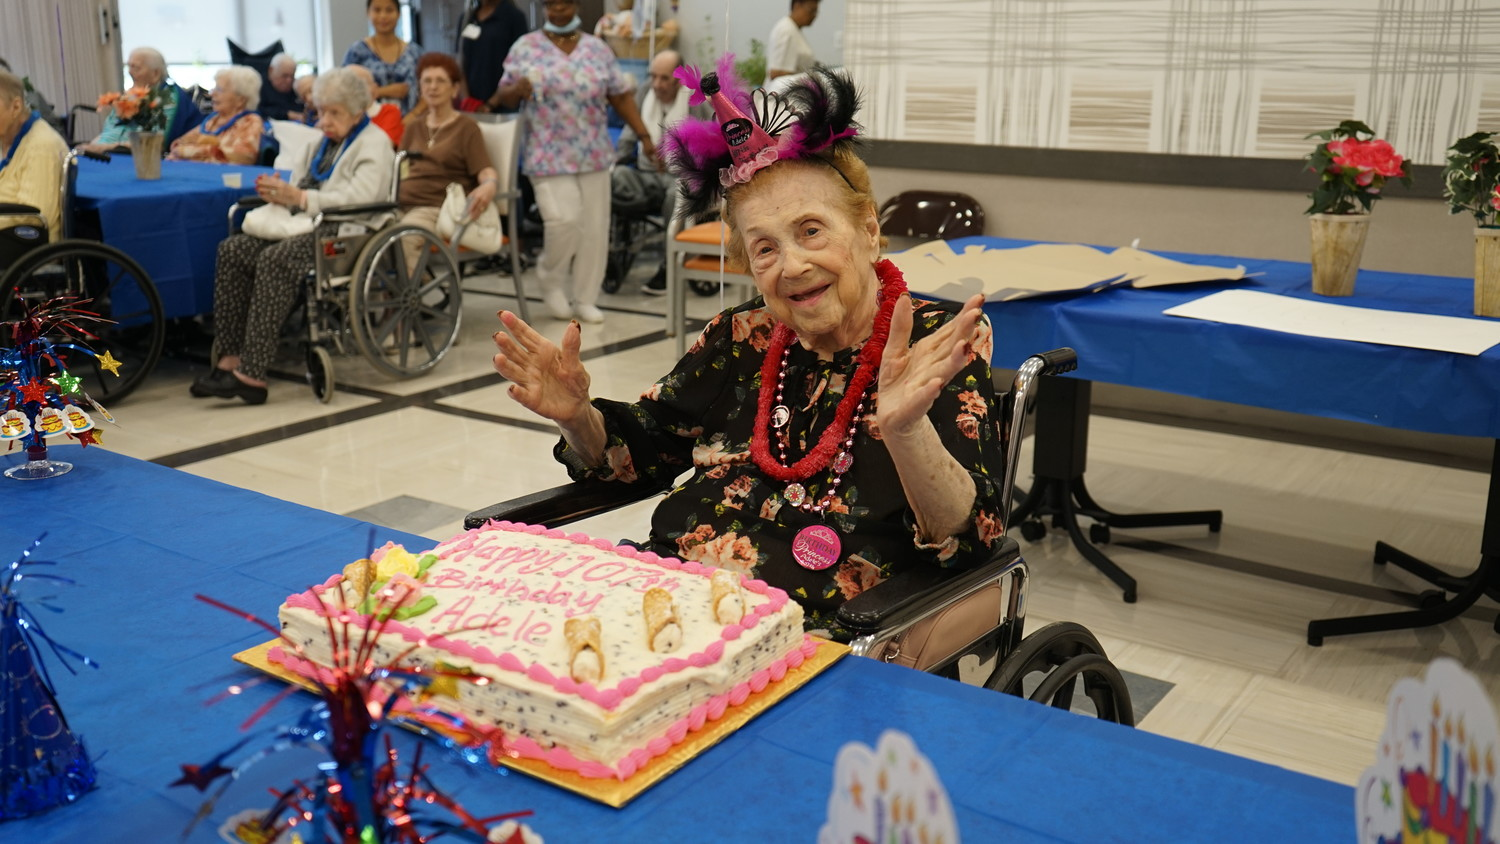 Oceanside Care Center resident Adele Perlow celebrated her 107th birthday on July 2. She spent a lifetime working in the women's fashion industry in New York City.